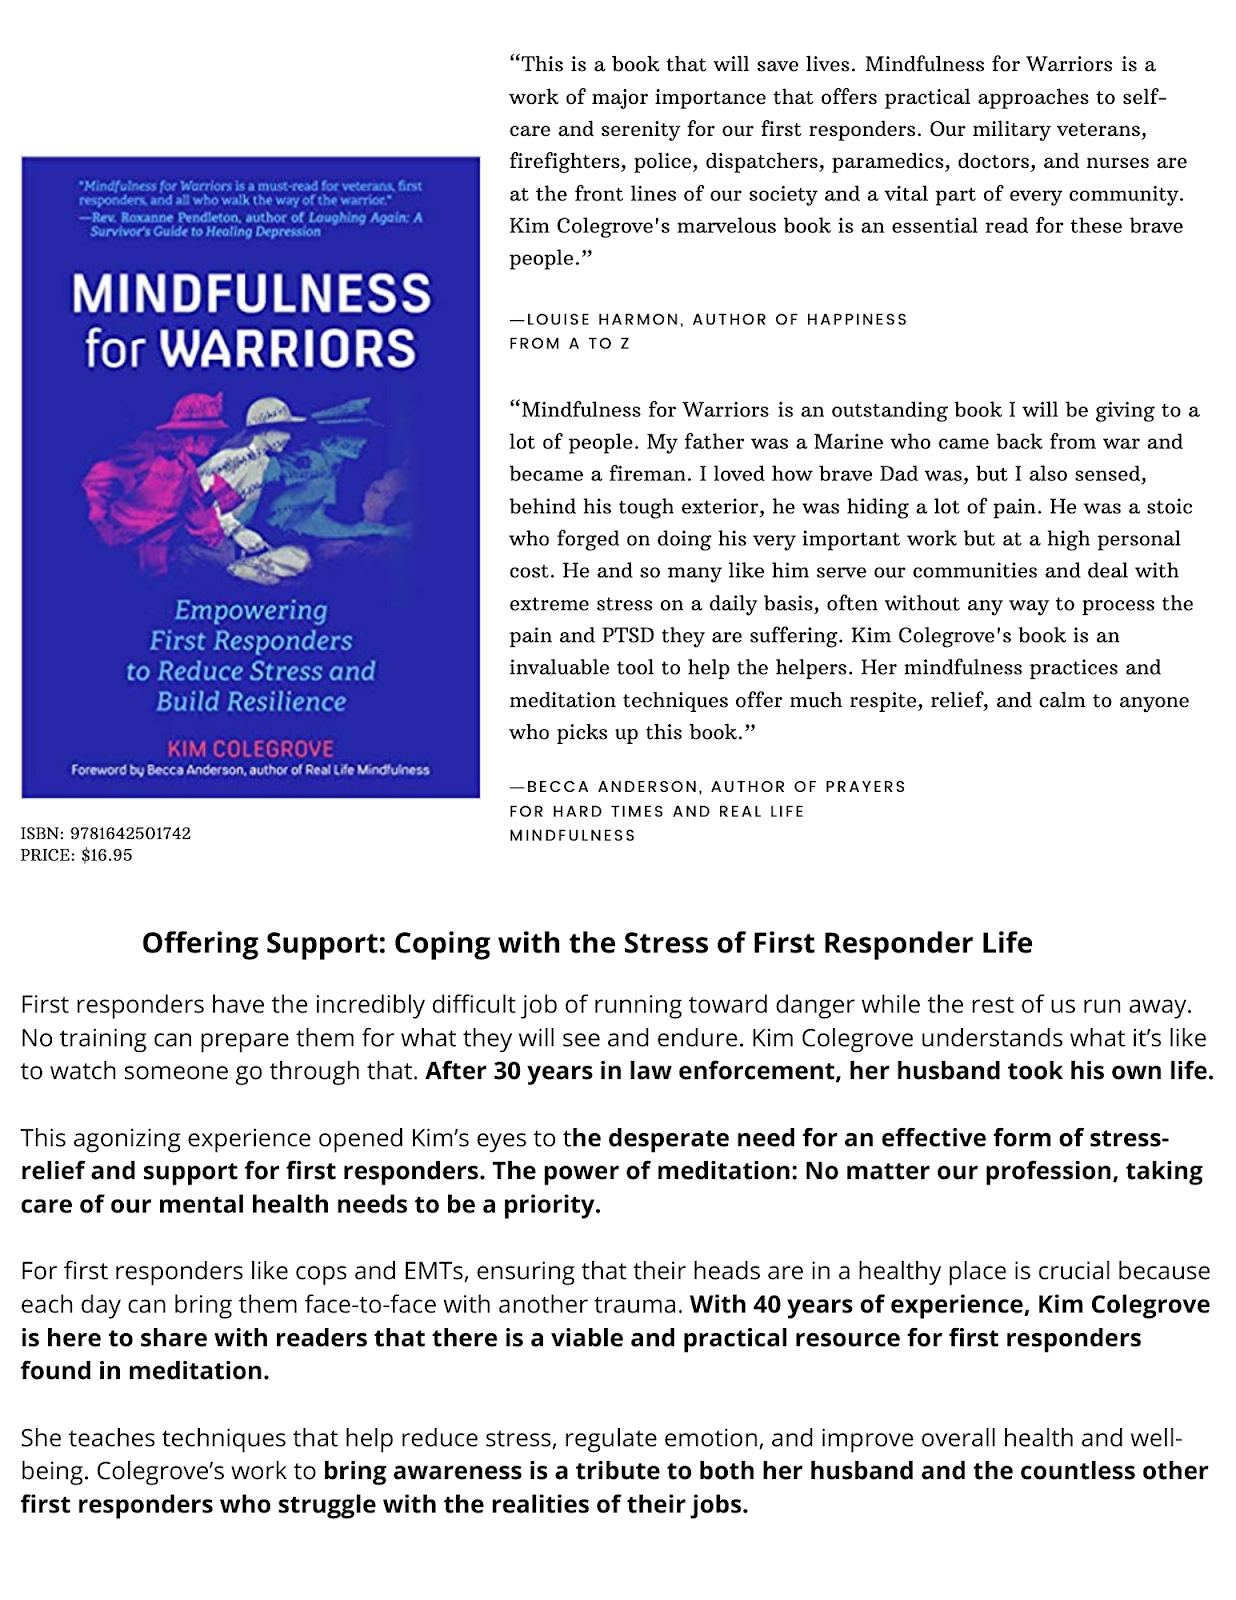 Mindfulness for Warriors.png